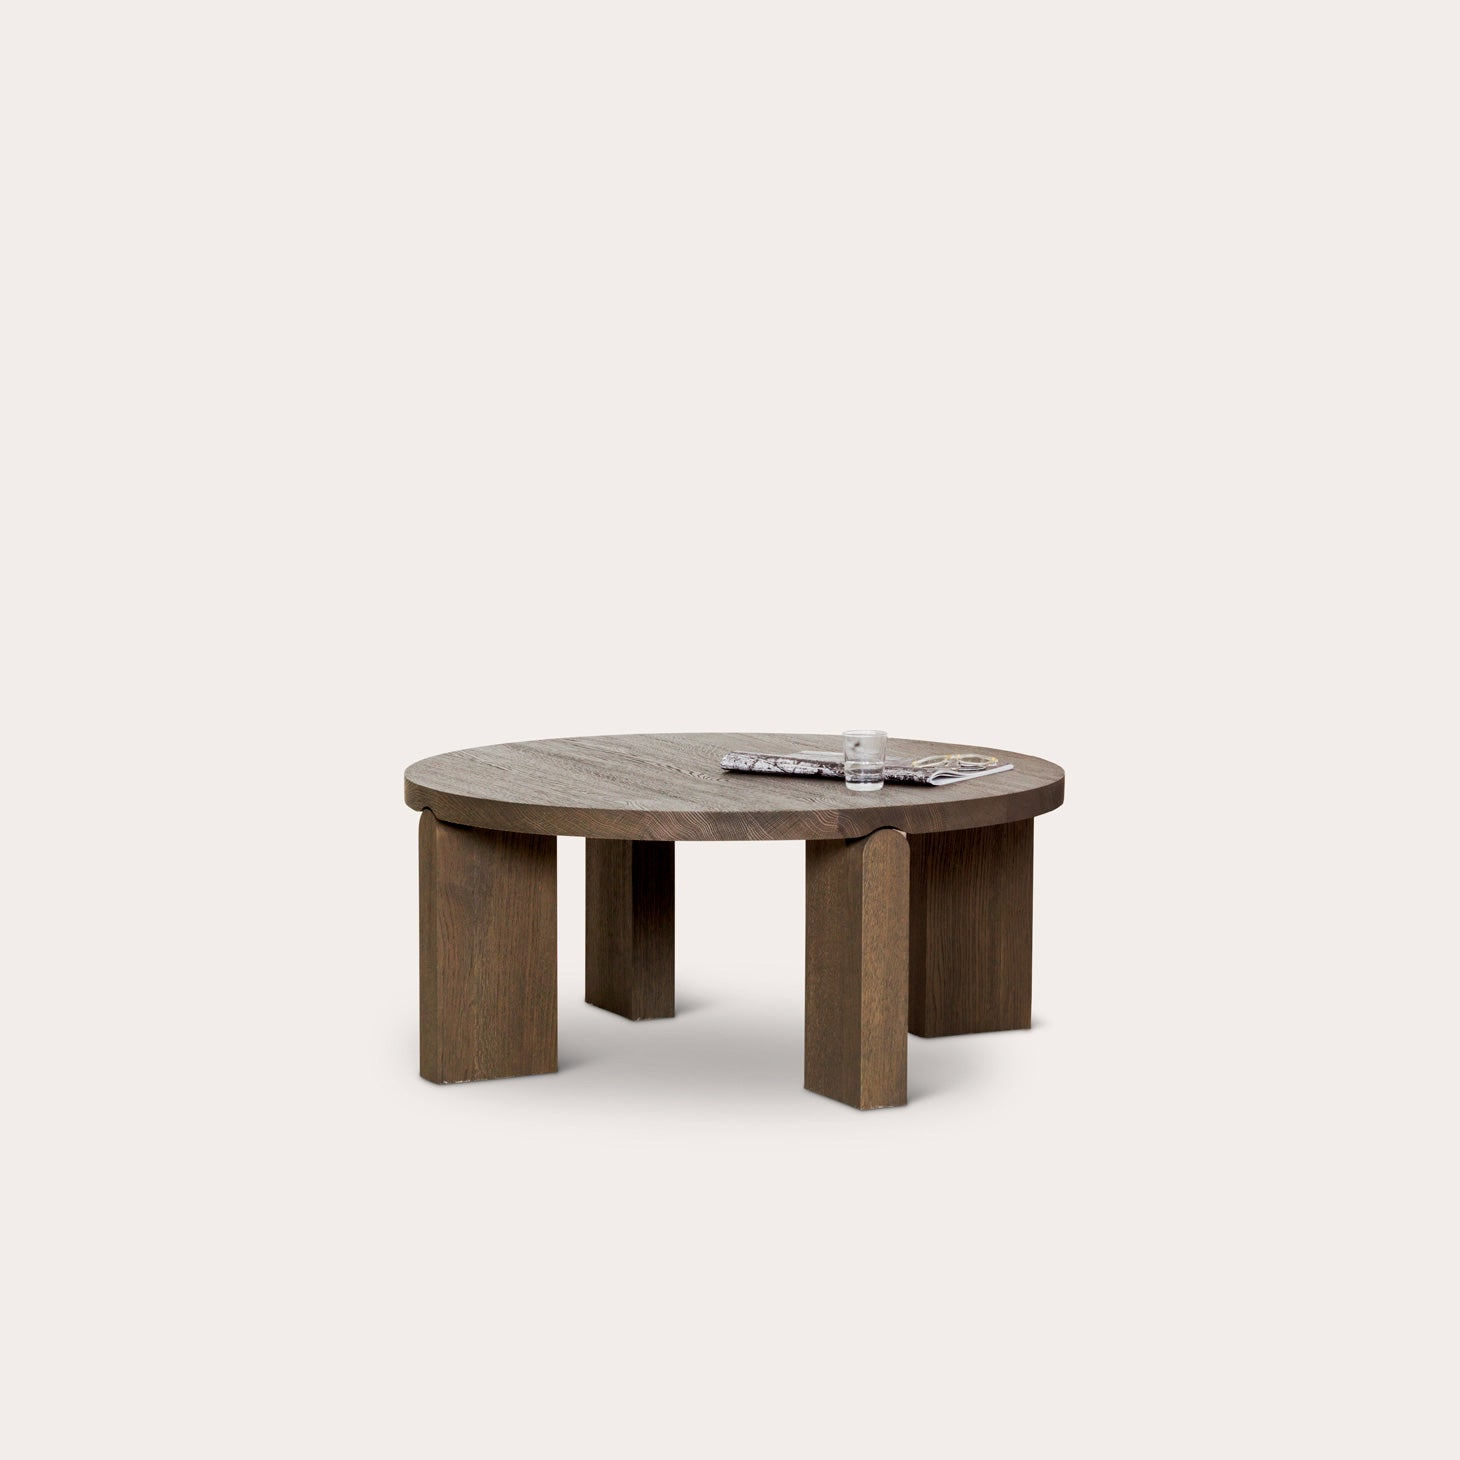 EDO Low Table Tables Christophe Delcourt Designer Furniture Sku: 008-230-10495